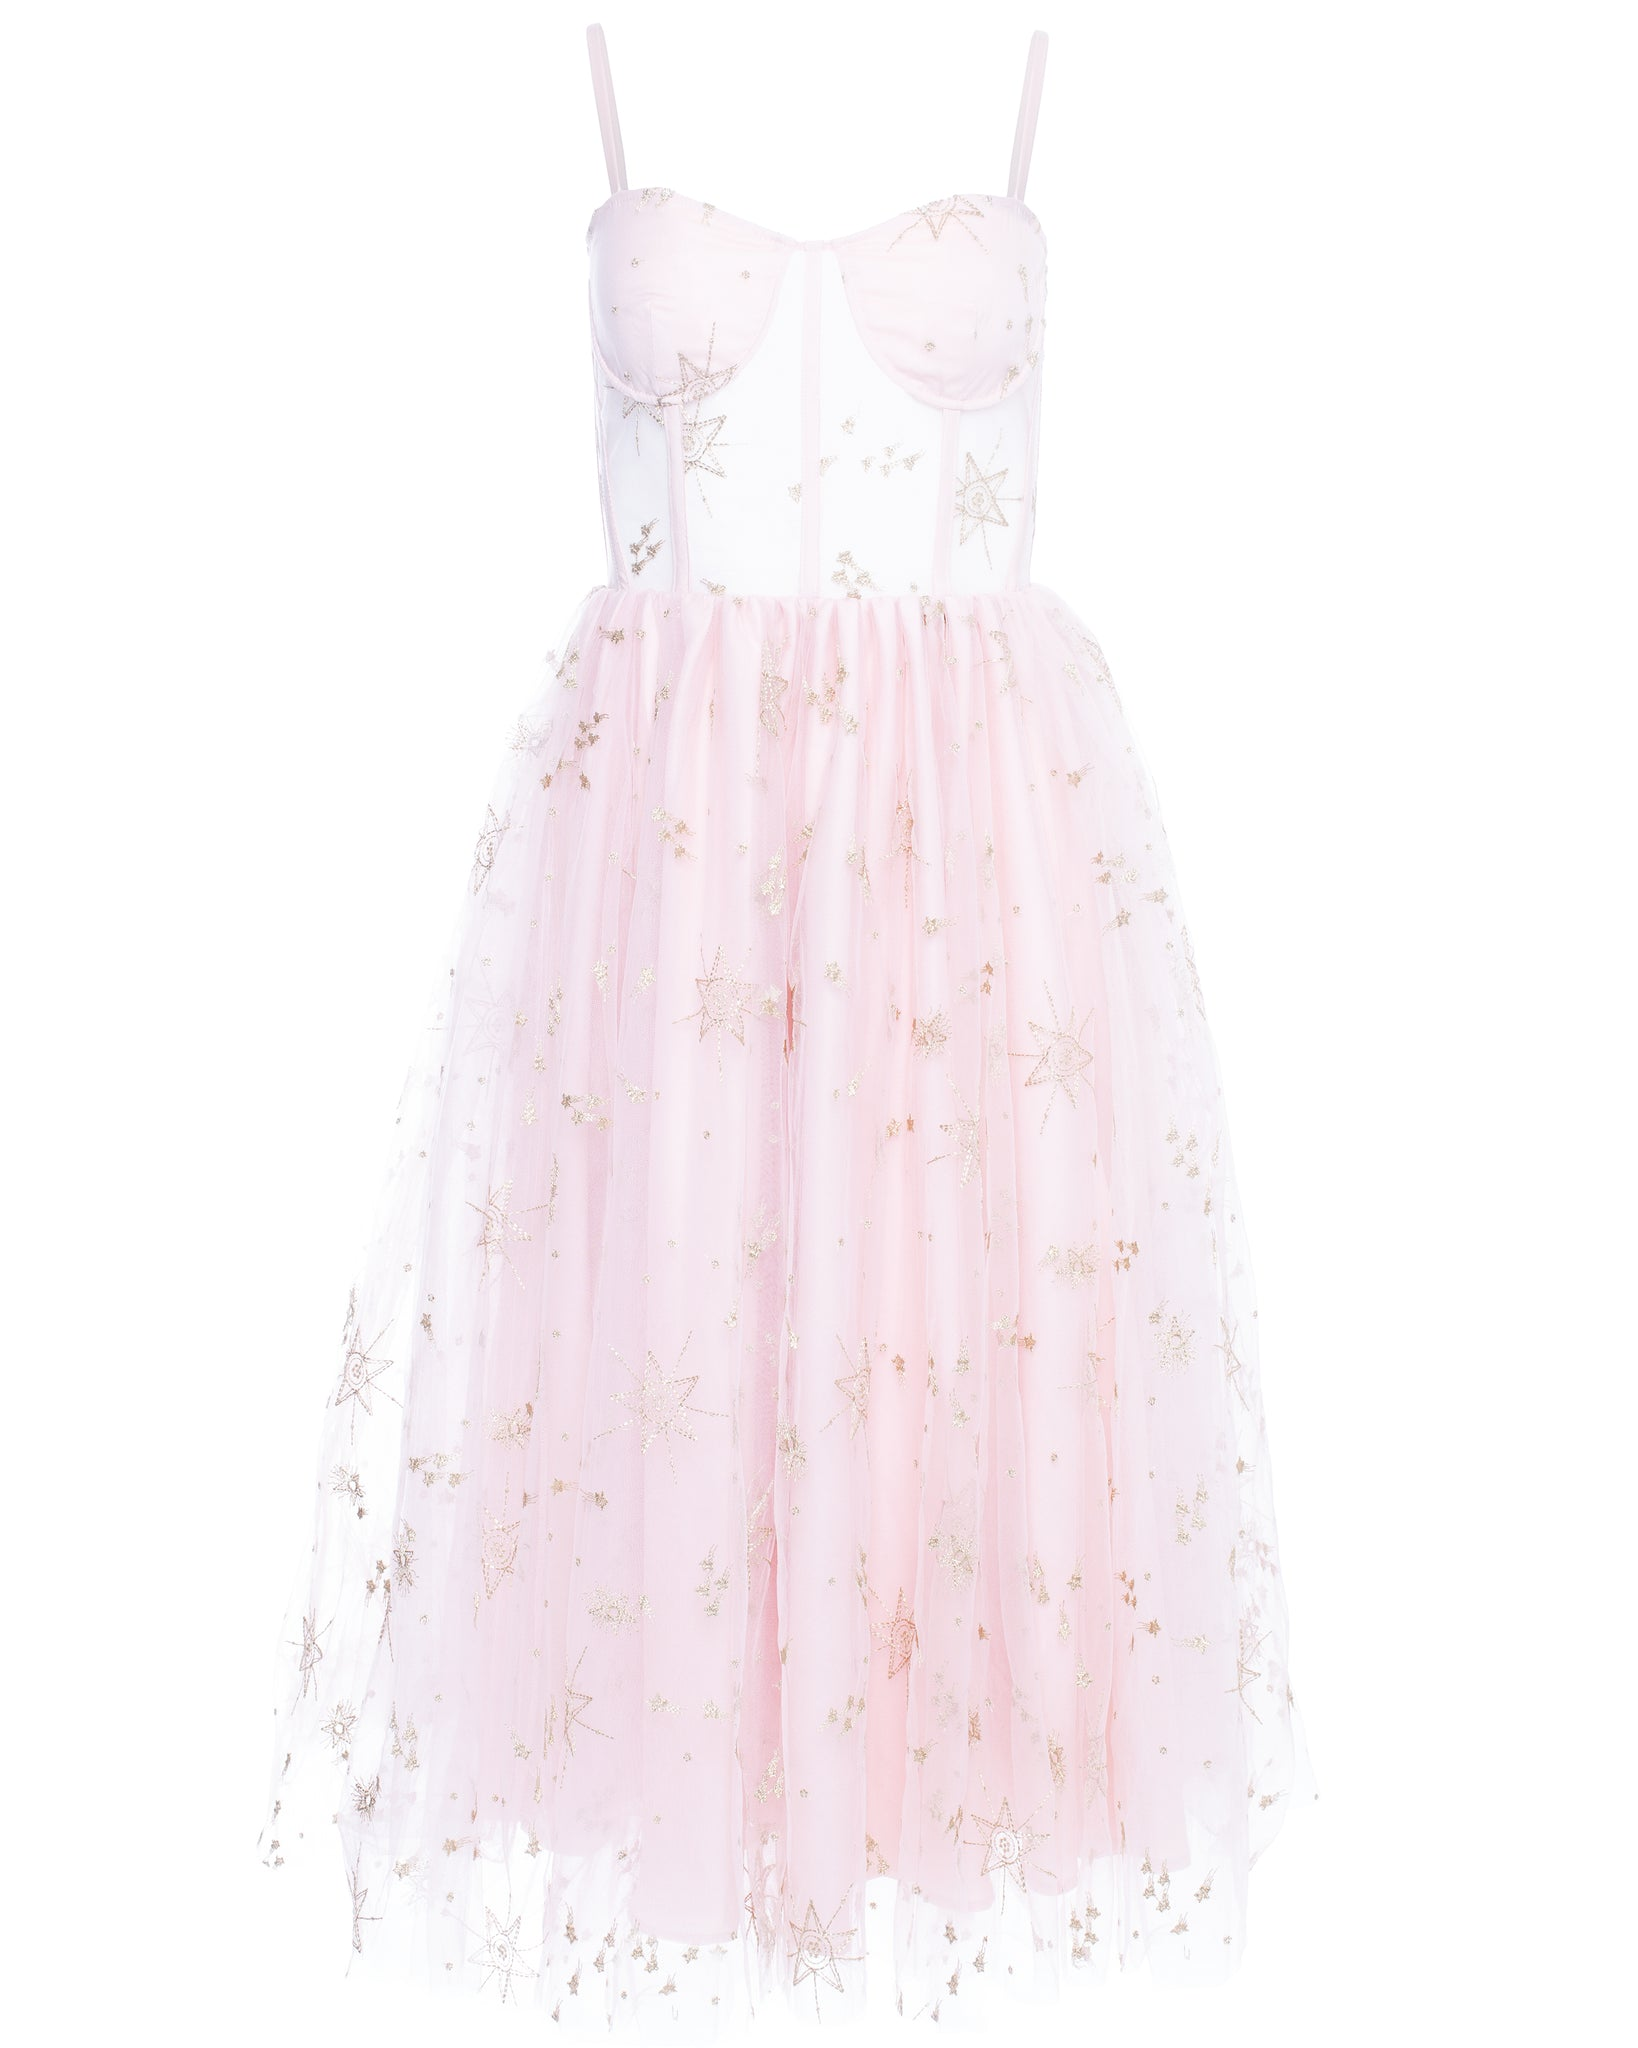 ORION TEA DRESS (BLUSH)